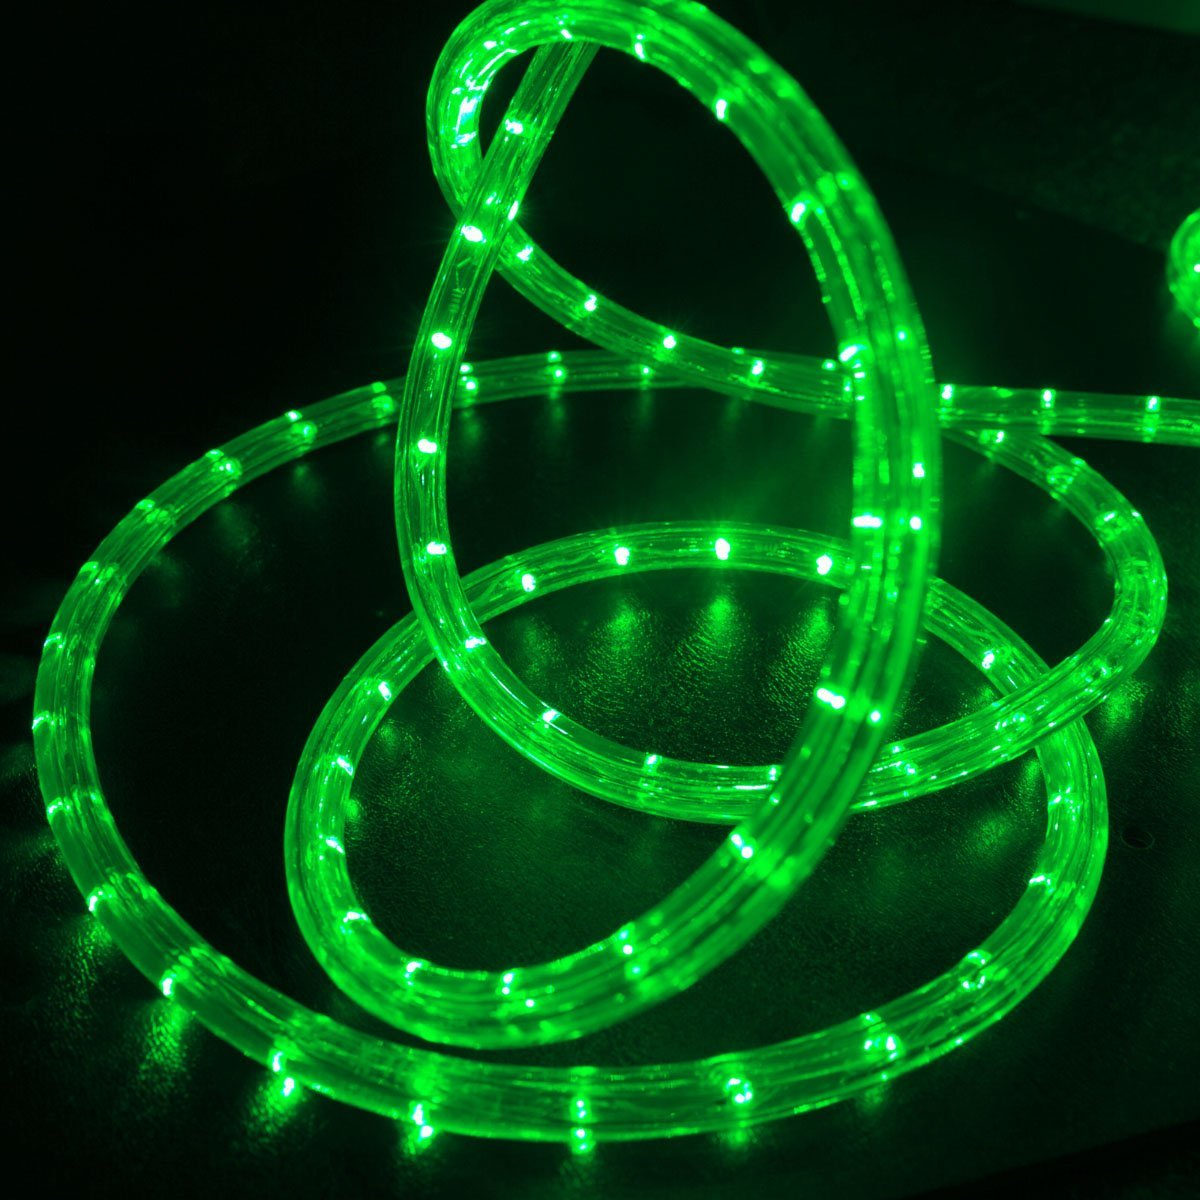 """WYZworks 25 feet 1/2"""" Thick Green Pre-Assembled LED Rope Lights with 10', 50', 100', 150' Option - Christmas Holiday Decoration Lighting 